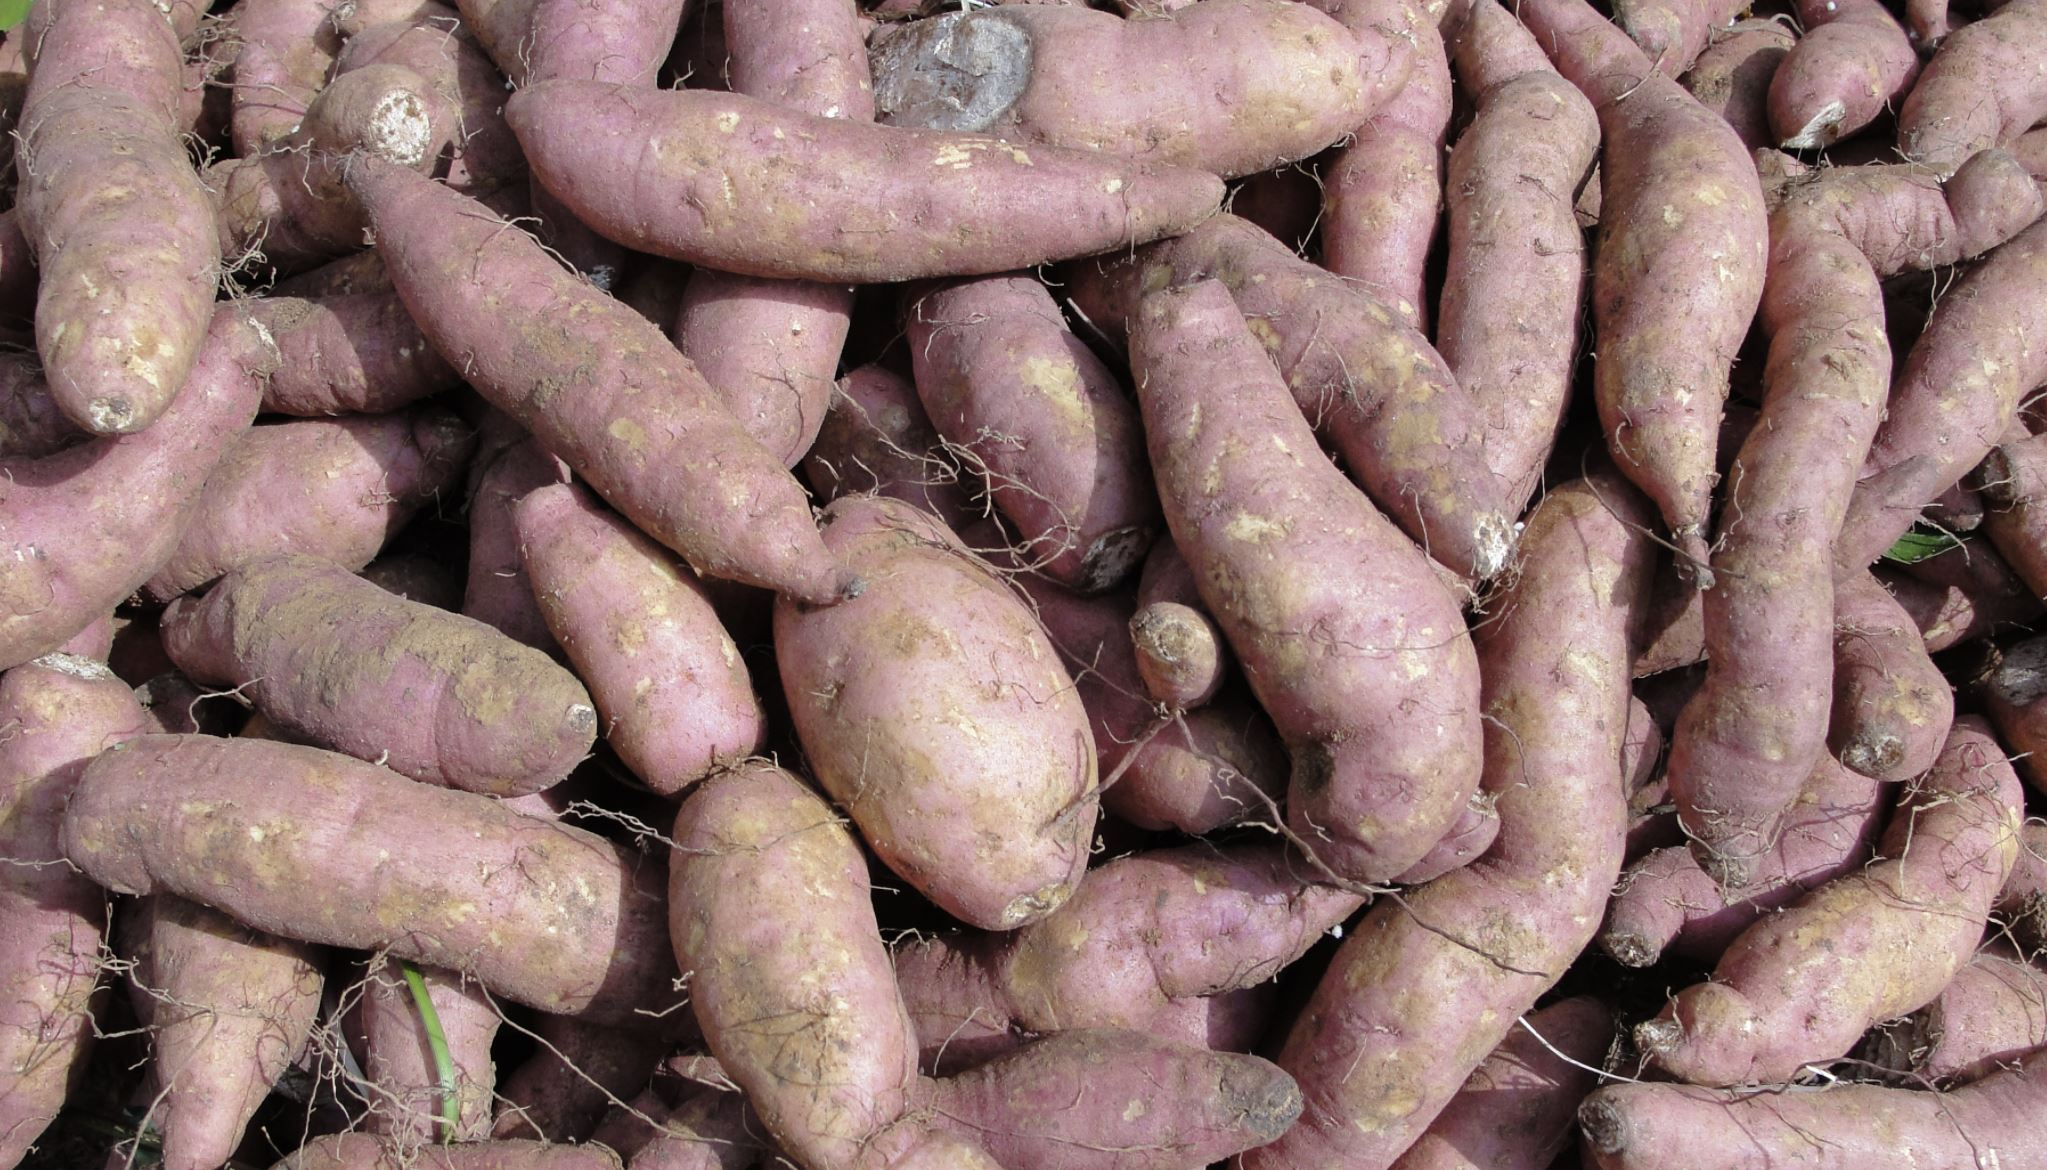 Sweet potato could be Alabama's official state vegetable